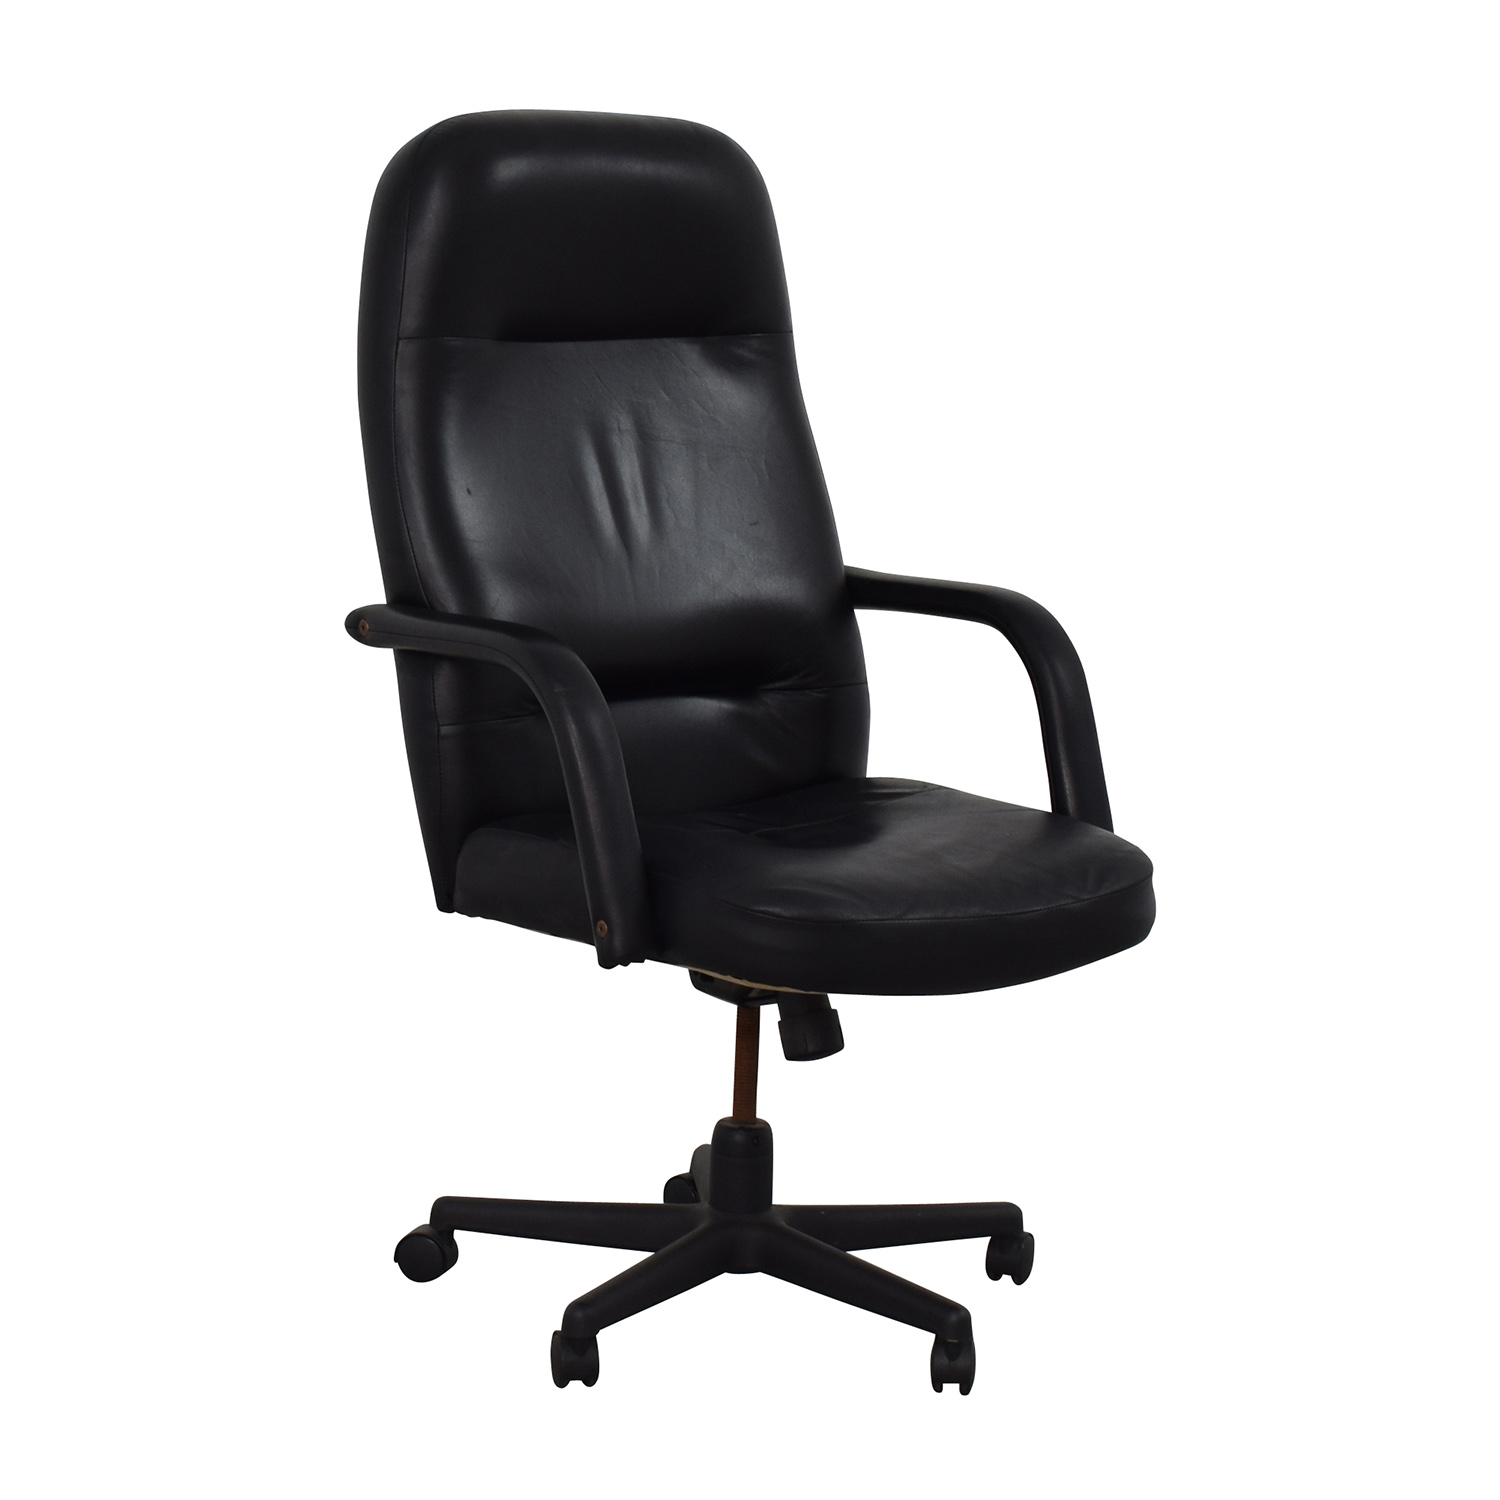 Black Leather Conference Room Chair discount